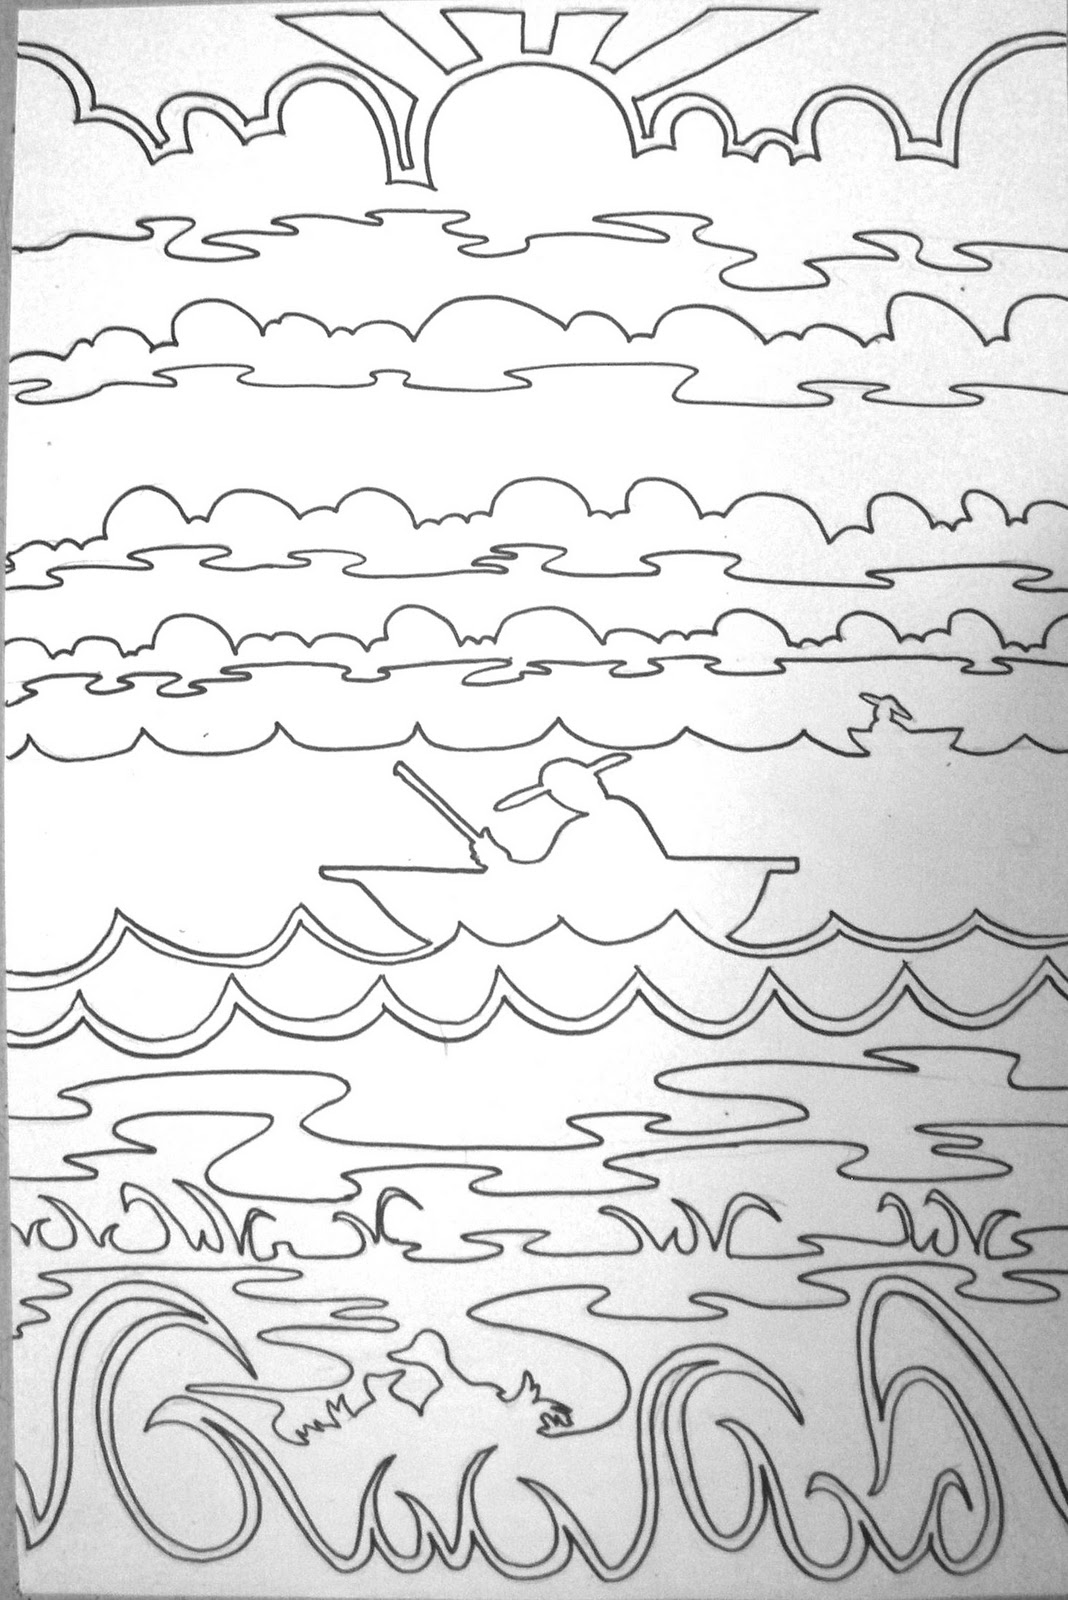 Line Art Landscape : The lost sock i love this line landscape idea